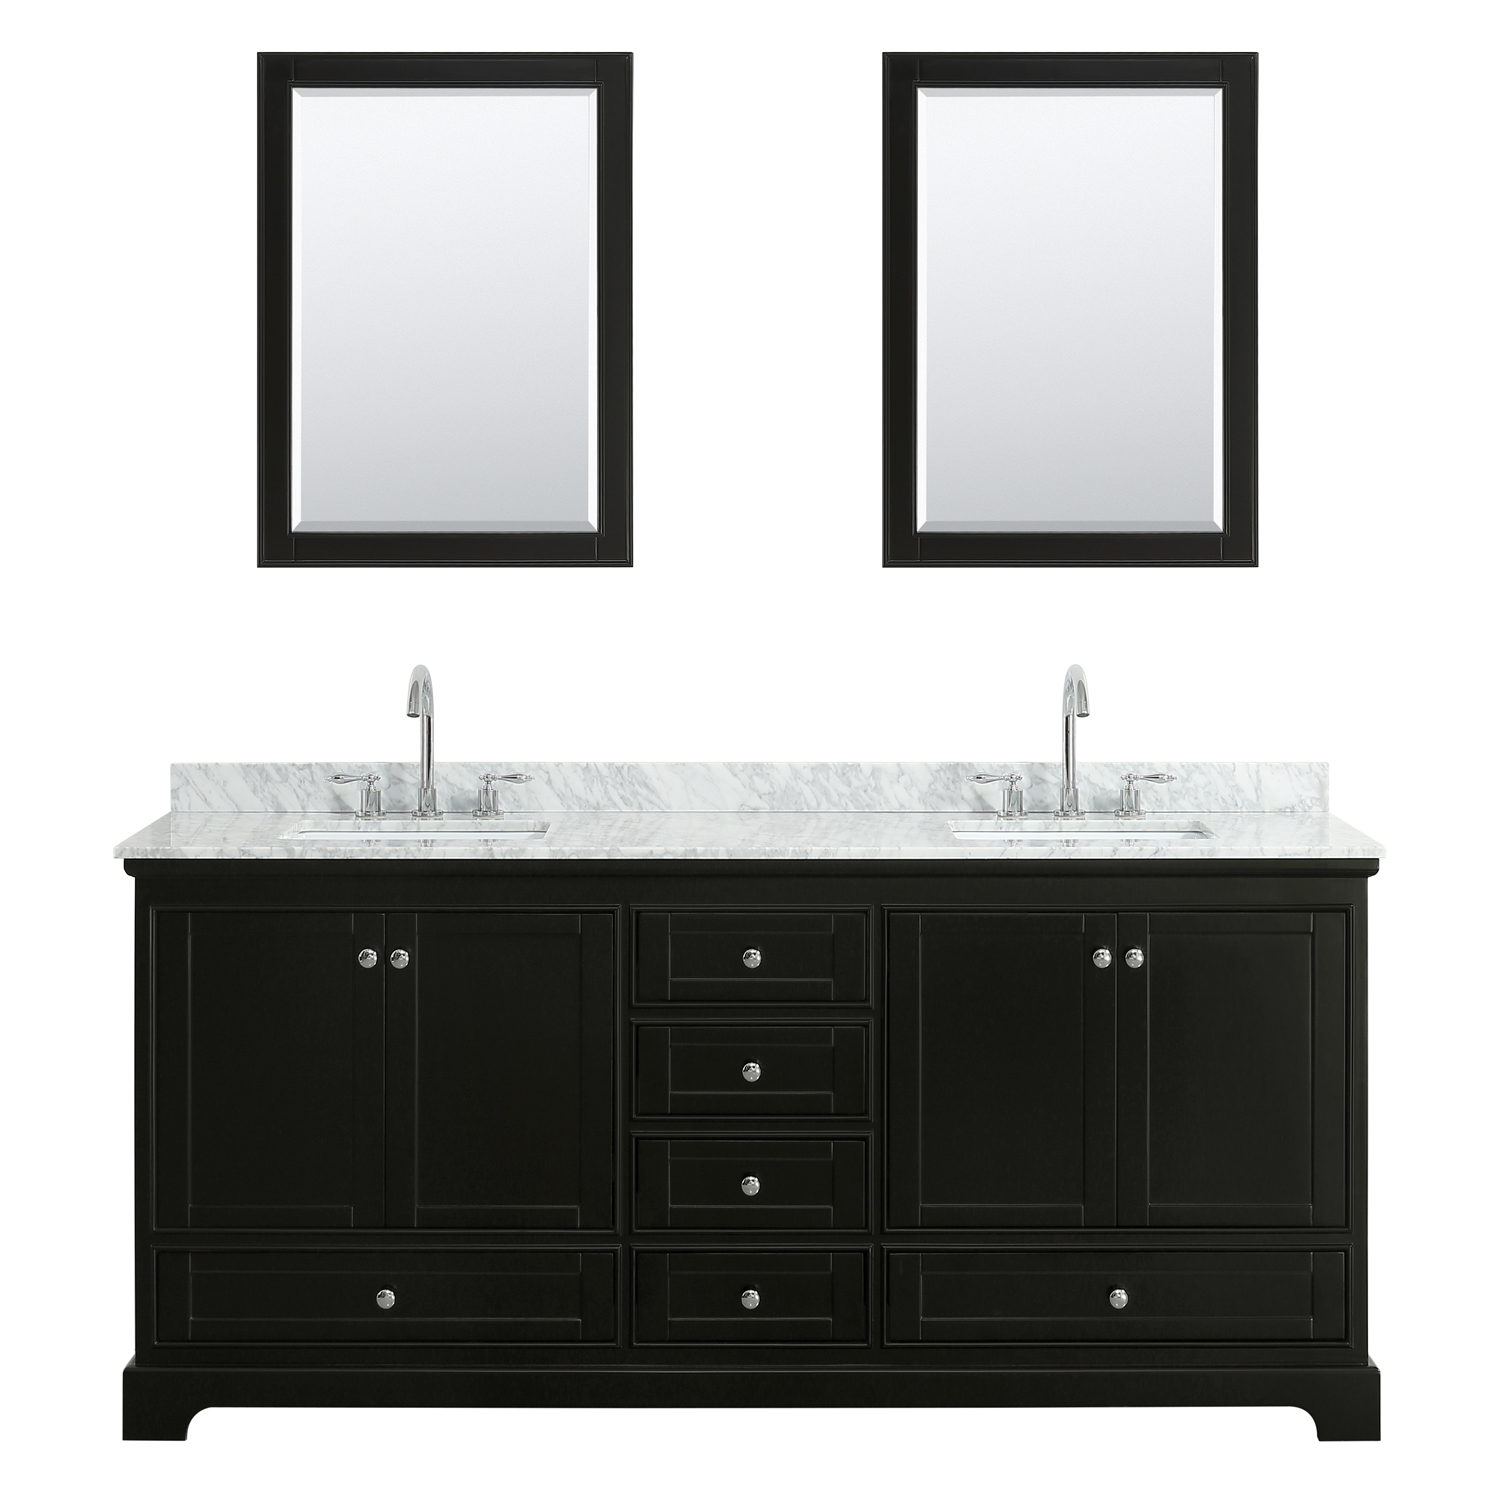 "80"" Double Bathroom Vanity in White Carrara Marble Countertop with Undermount Porcelain Sinks, Medicine Cabinet, Mirror and Color Options"